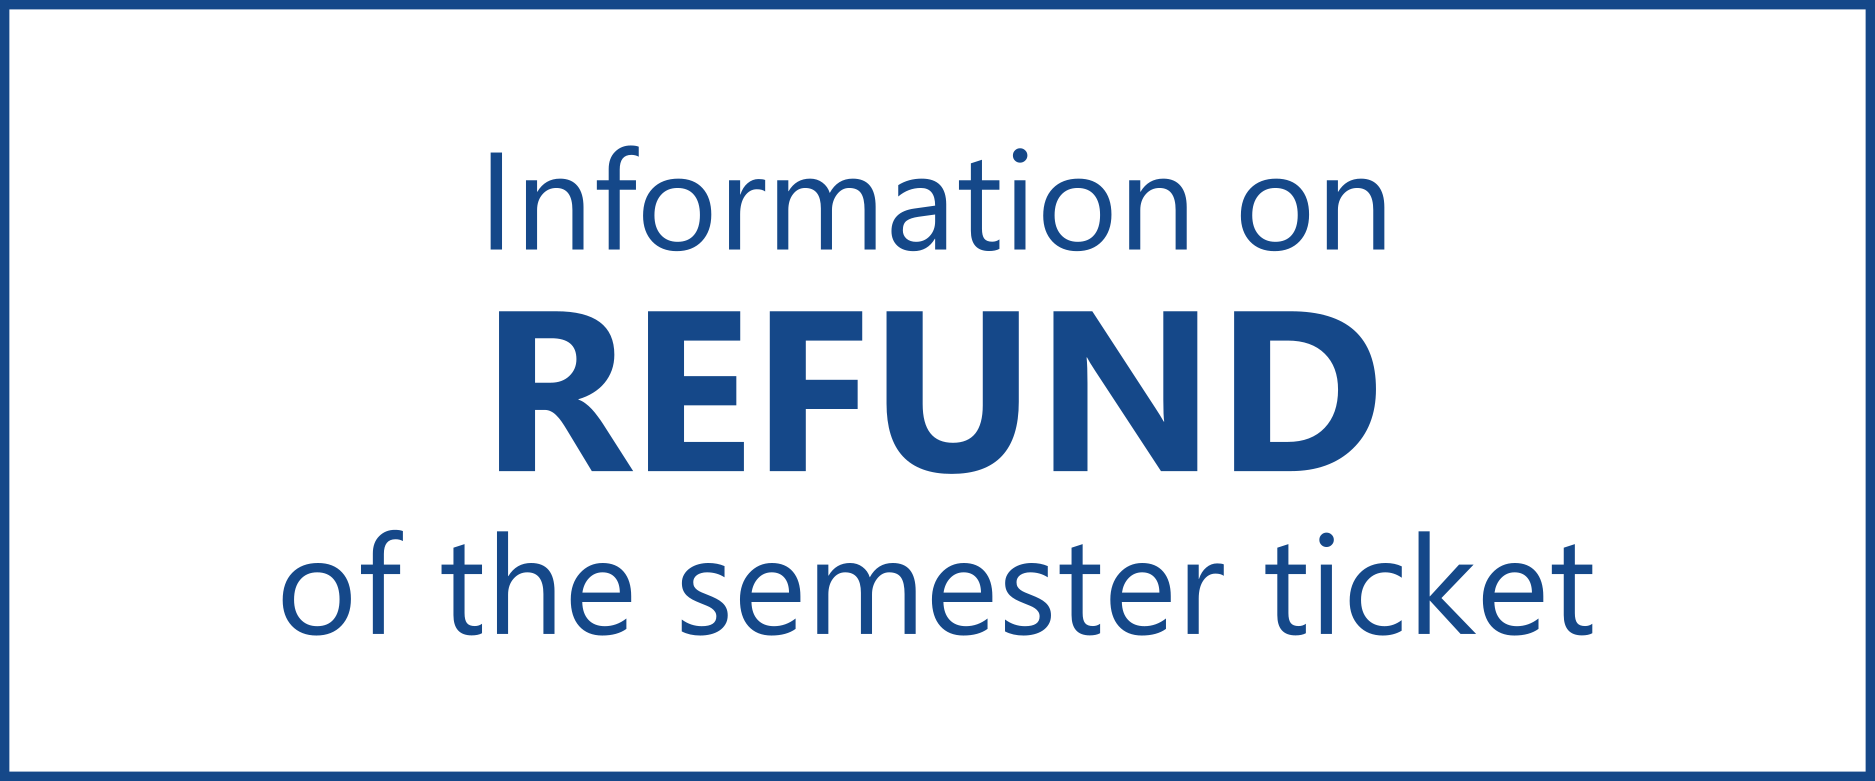 Information on refund of the semester ticket